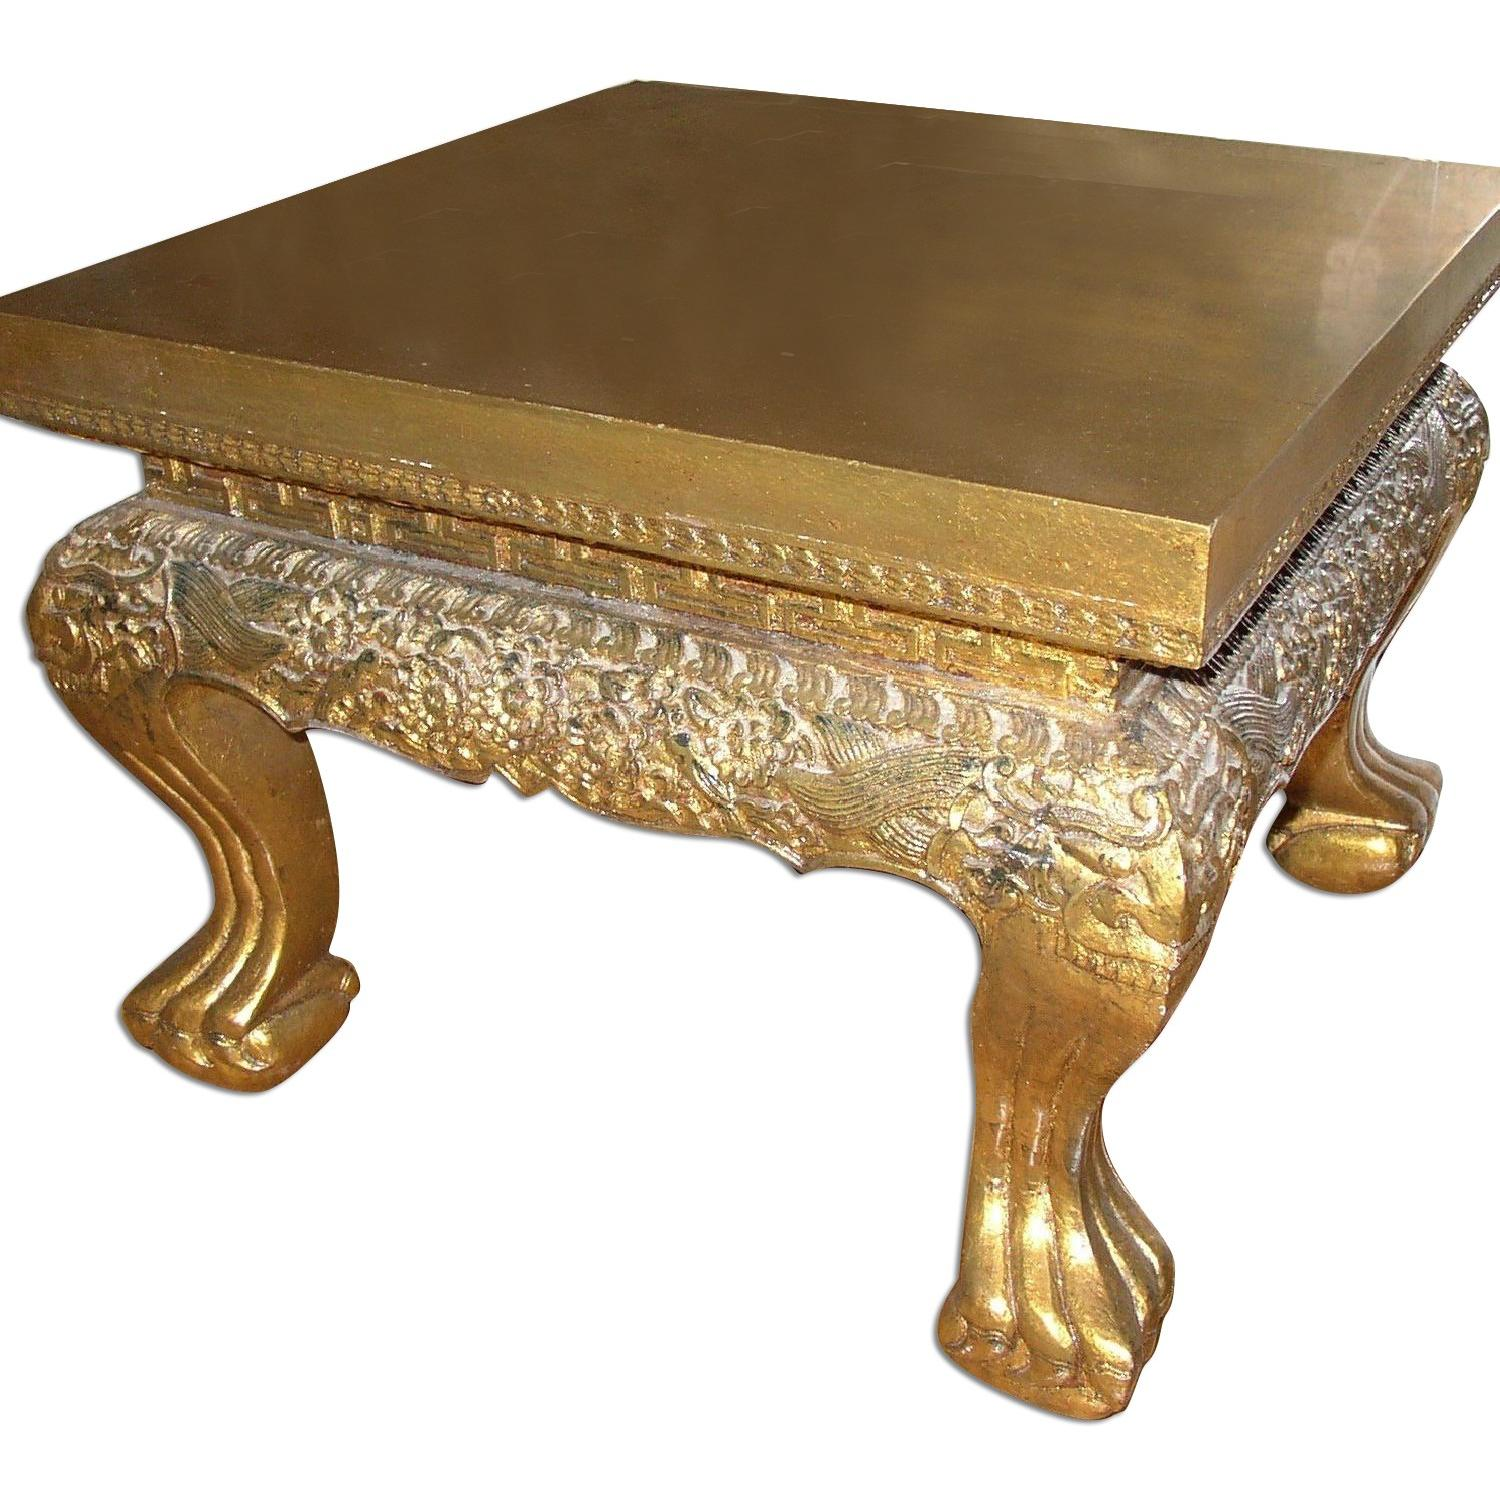 Karl Mann Ball & Claw Gold Leaf Cocktail/End Table